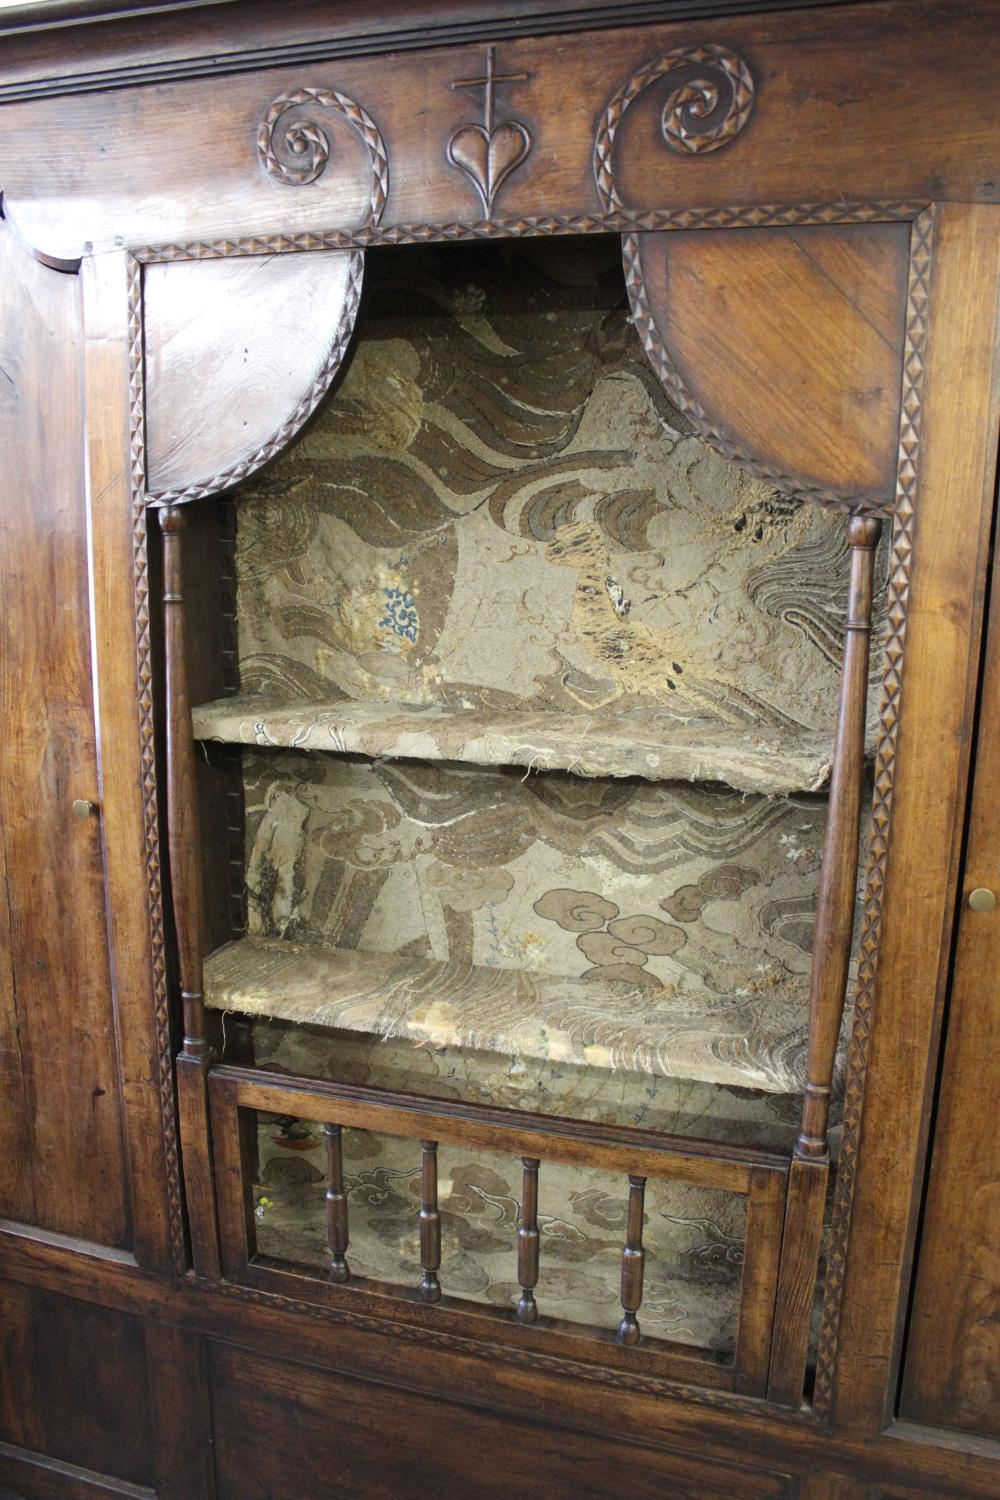 Large 19th Century French fruitwood shallow side cabinet, the moulded cornice above a carved frieze, - Image 2 of 2